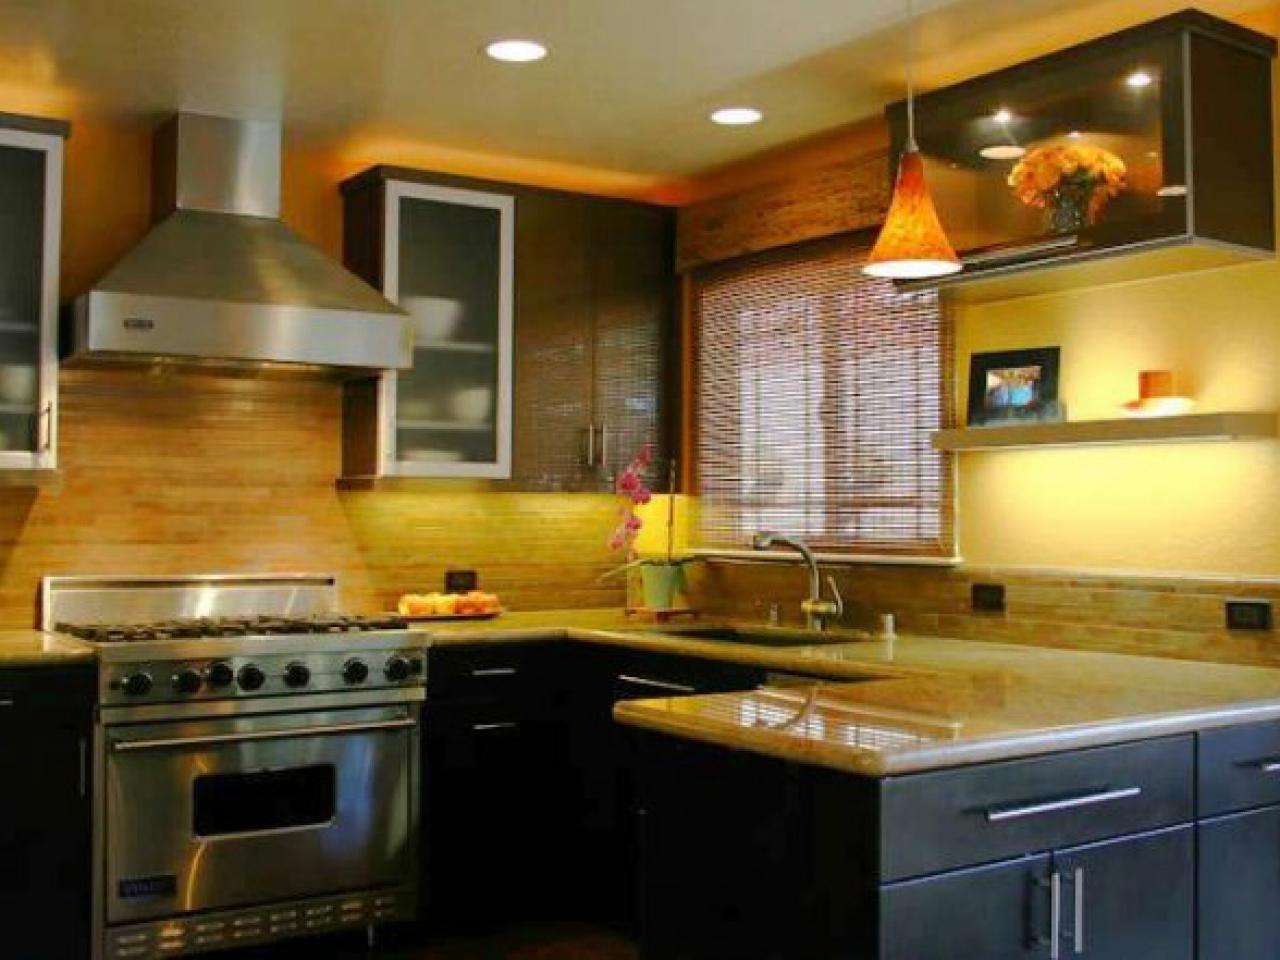 4 eco friendly kitchen upgrades my green home blog for Eco friendly kitchen products